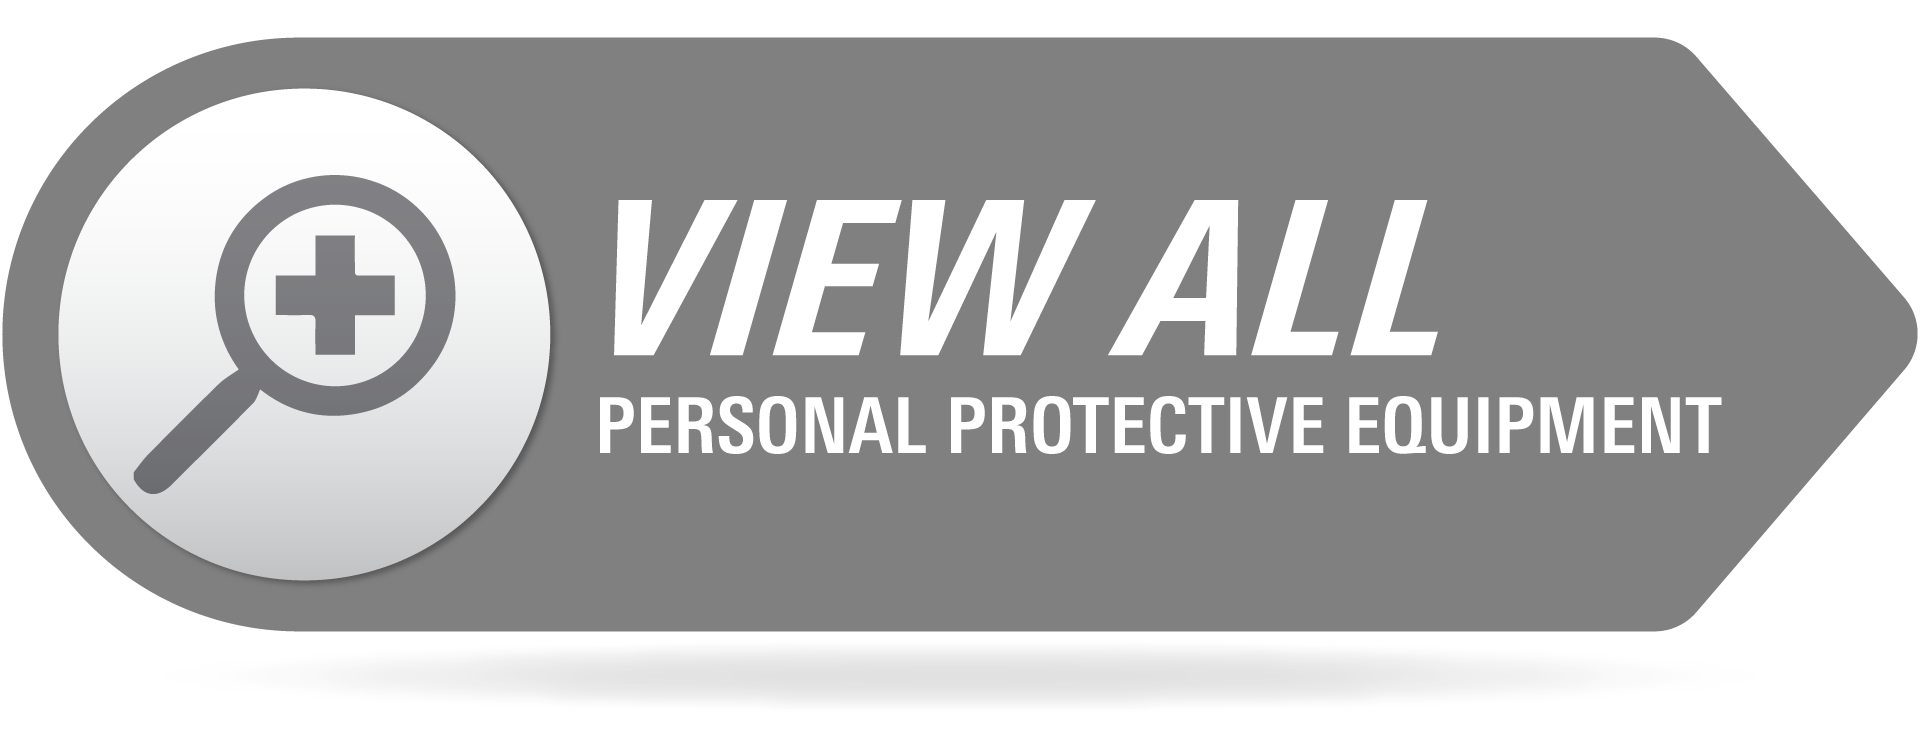 View All PPE Personal Protective Equipment On Sale